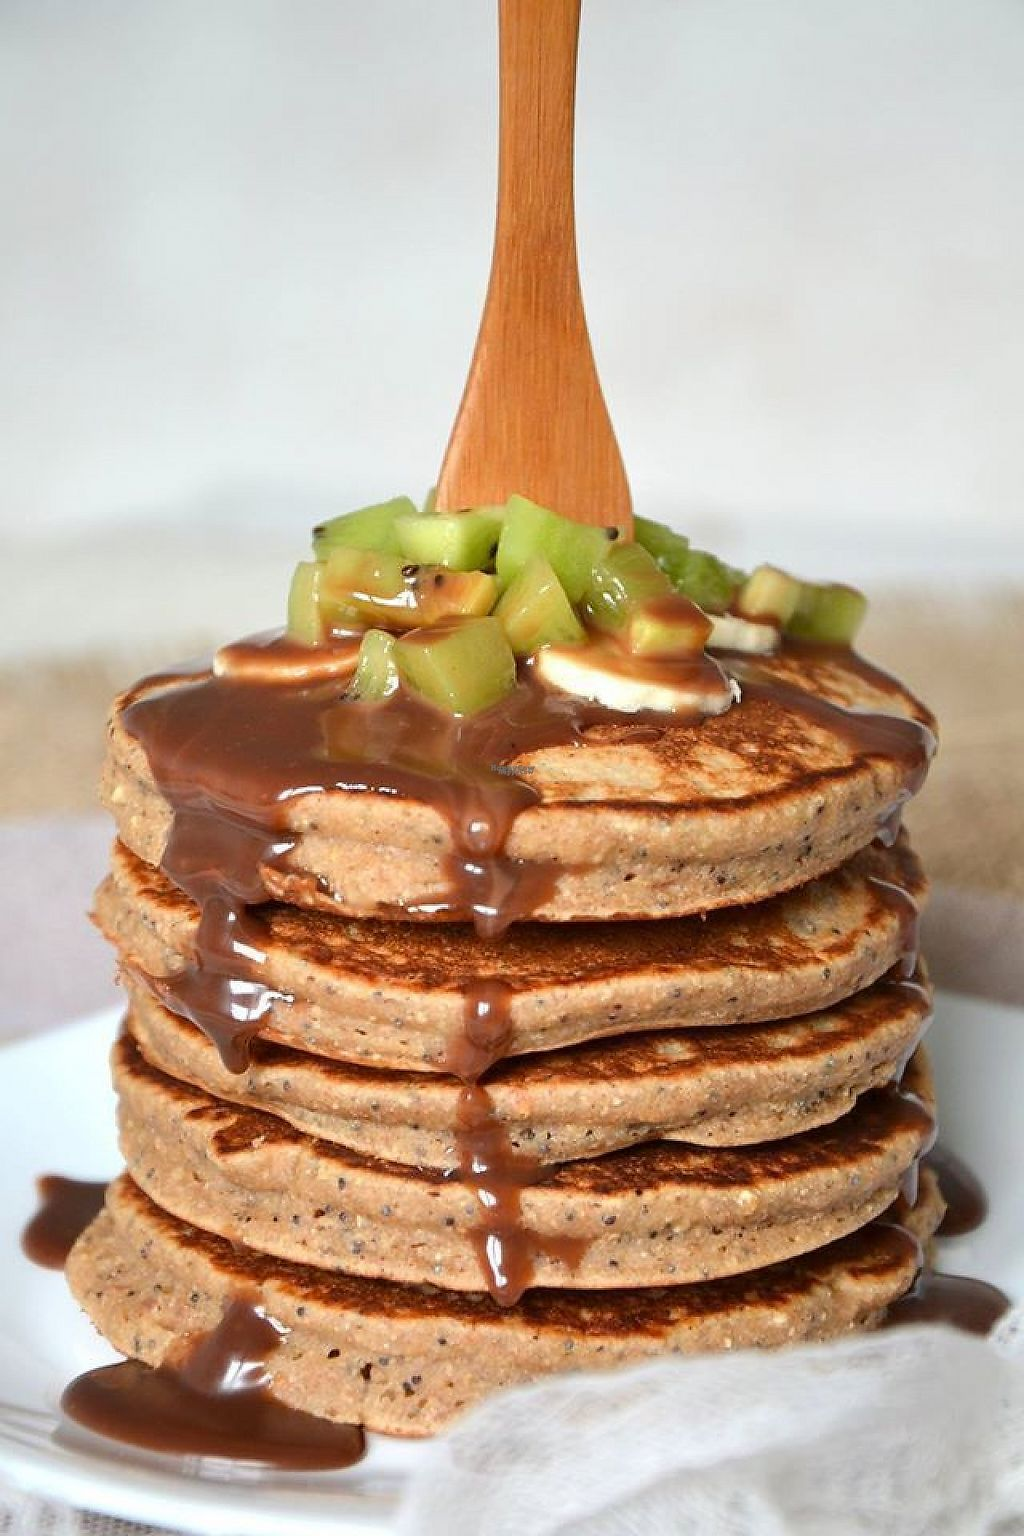 "Photo of La Vie Claire  by <a href=""/members/profile/community"">community</a> <br/>vegan pancakes  <br/> February 4, 2017  - <a href='/contact/abuse/image/71981/221851'>Report</a>"